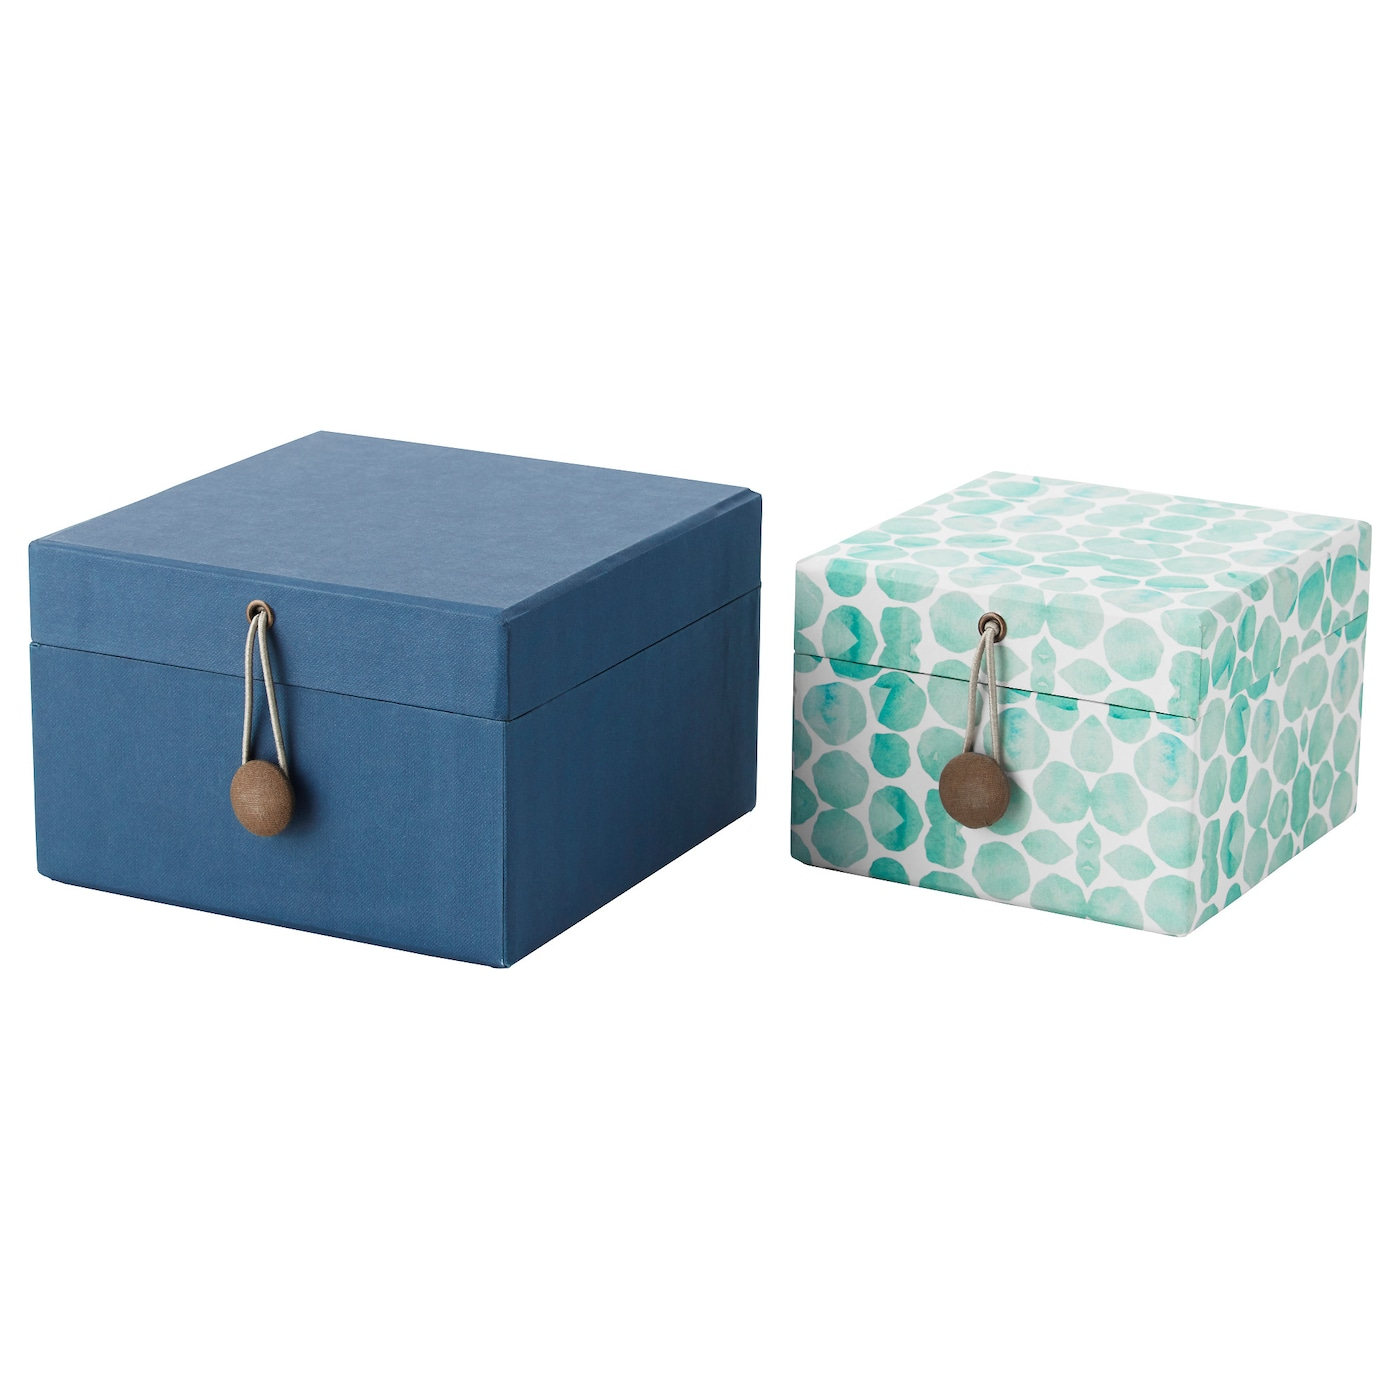 IKEA EKLOG gift box, set of 2